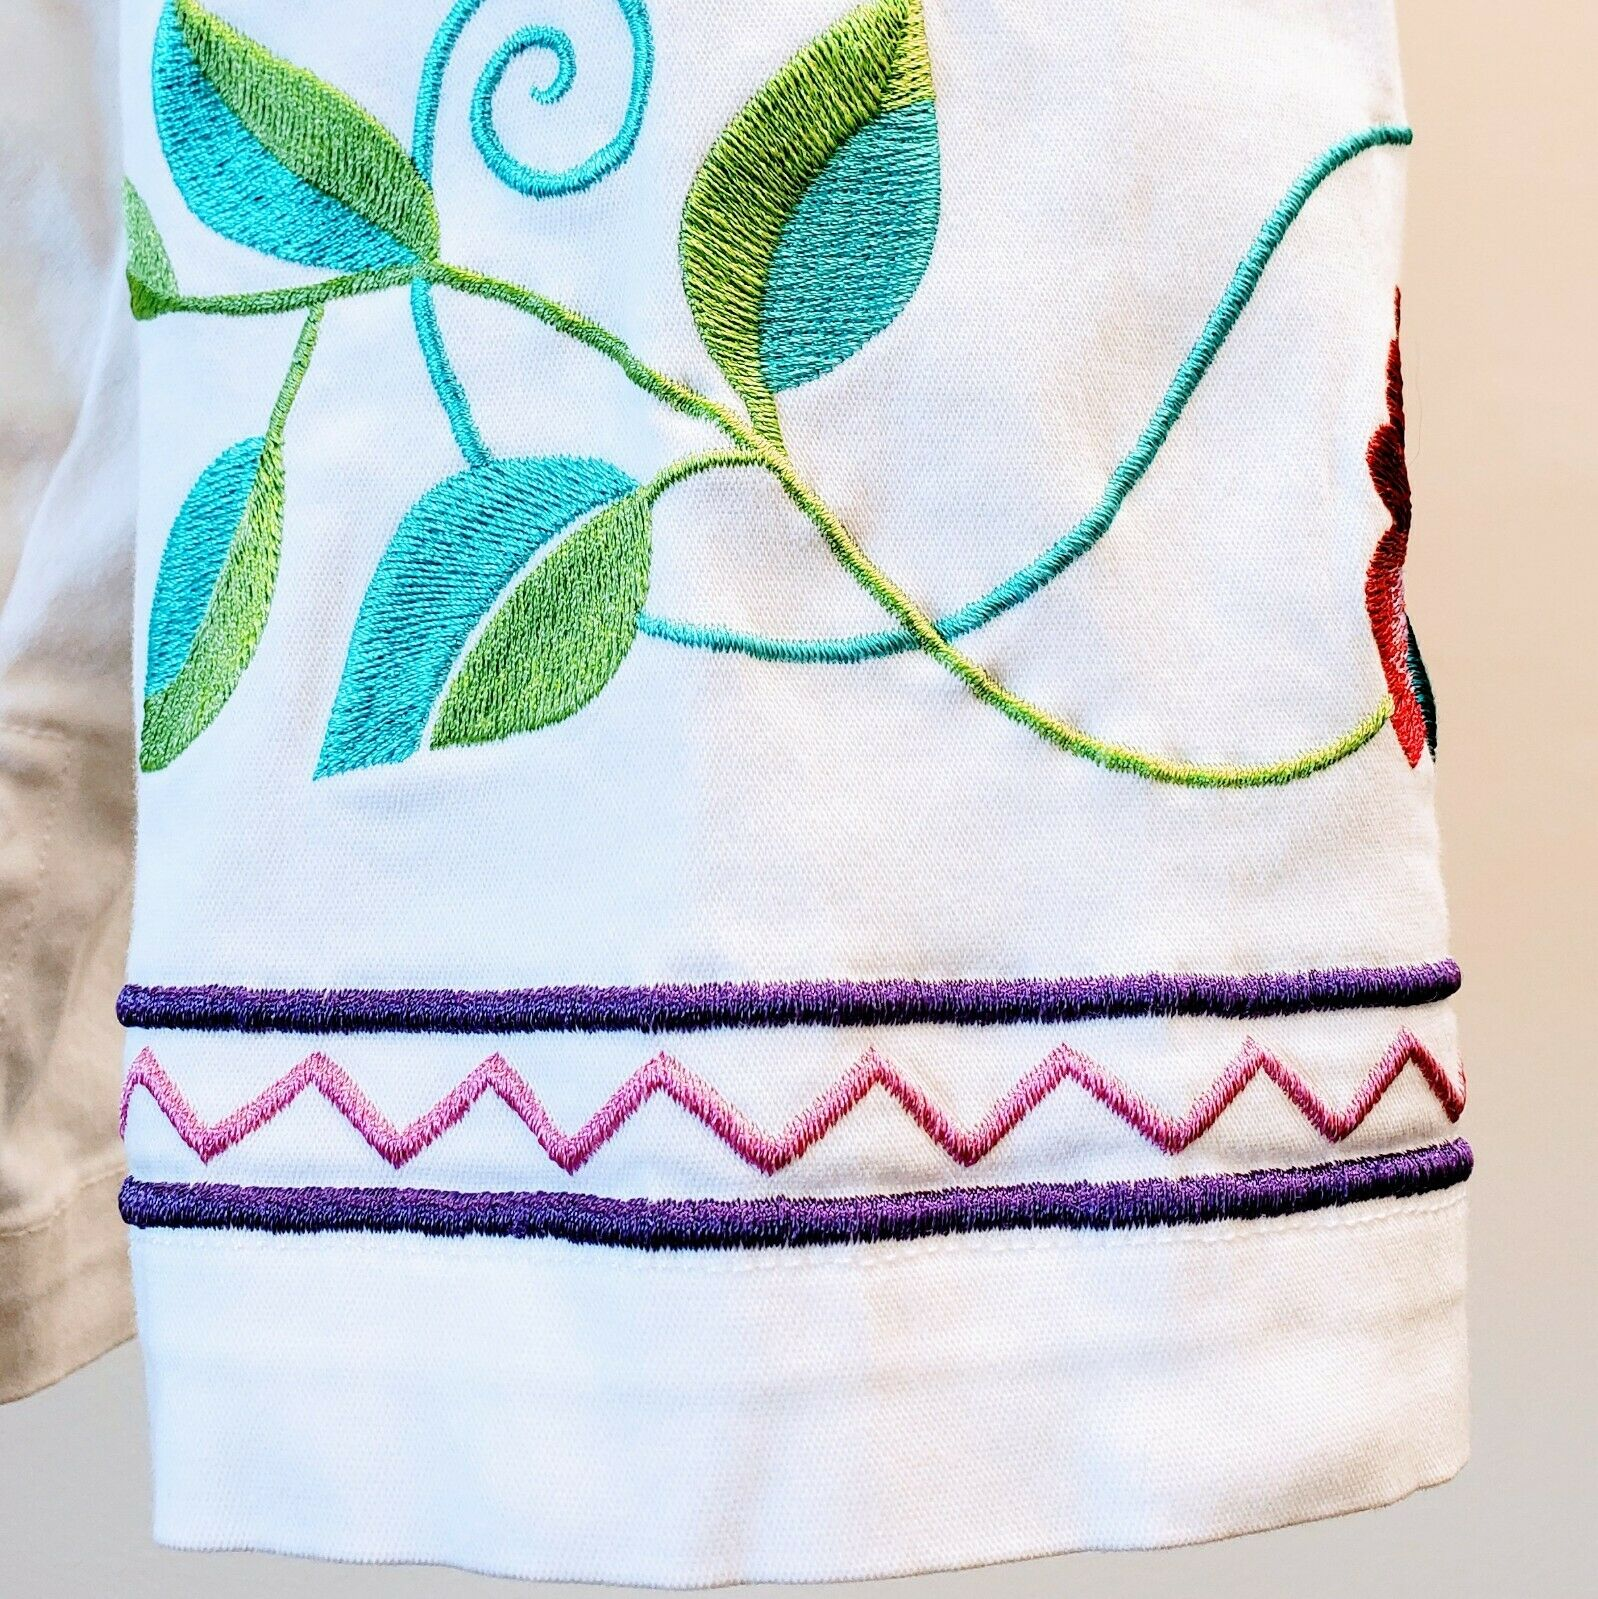 DENIM & CO. Embroidered Cotton Jacket please see … - image 5